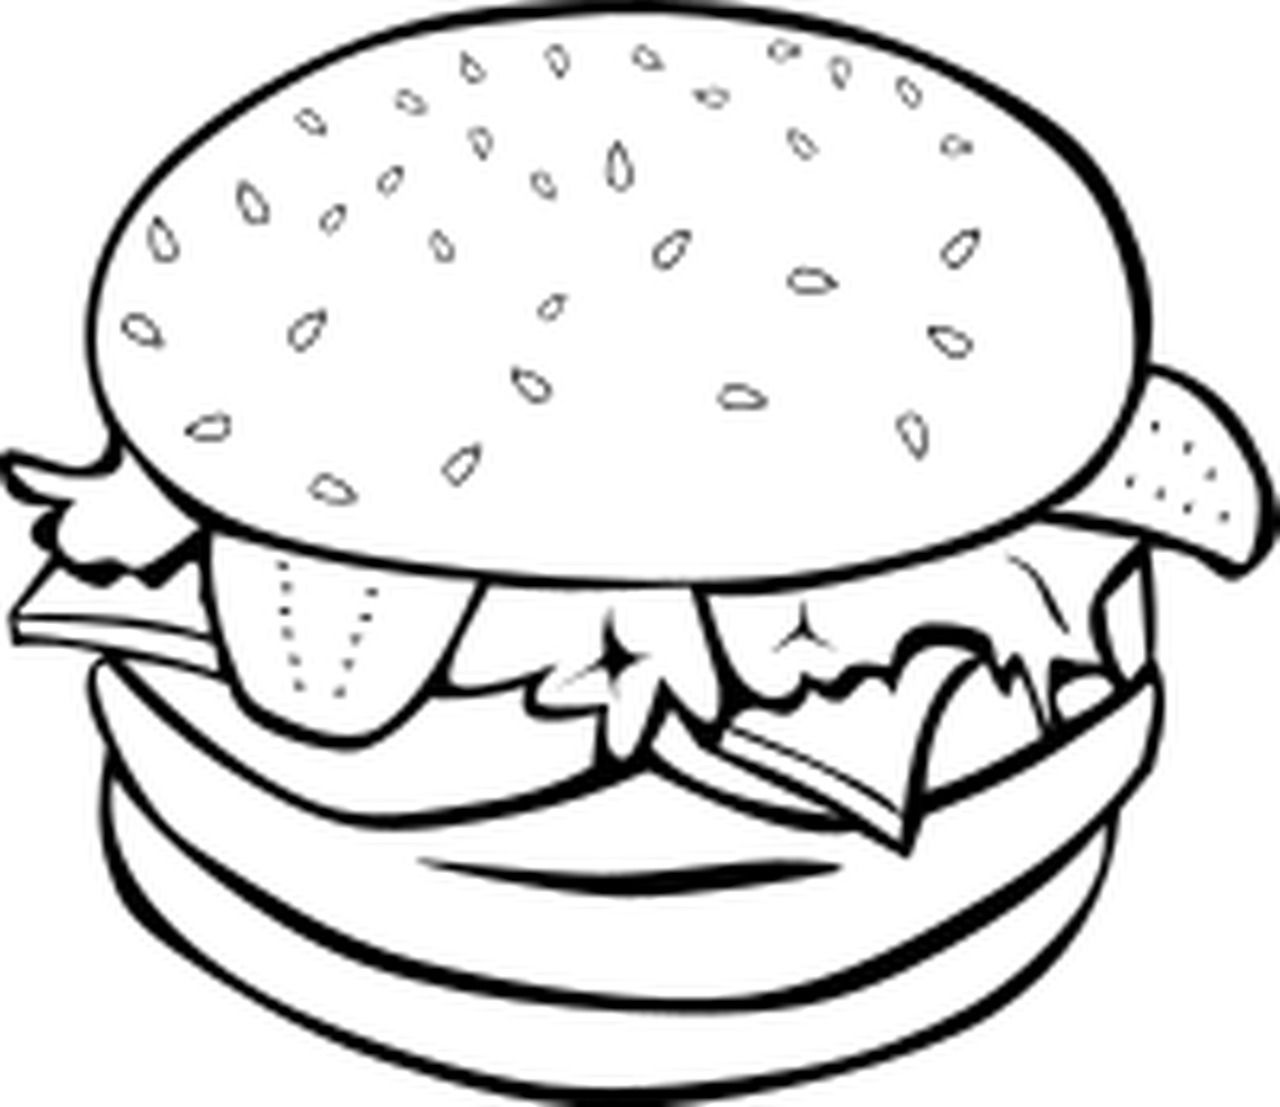 Cheeseburger Coloring Page D Oloring Pages For All Ages Coloring